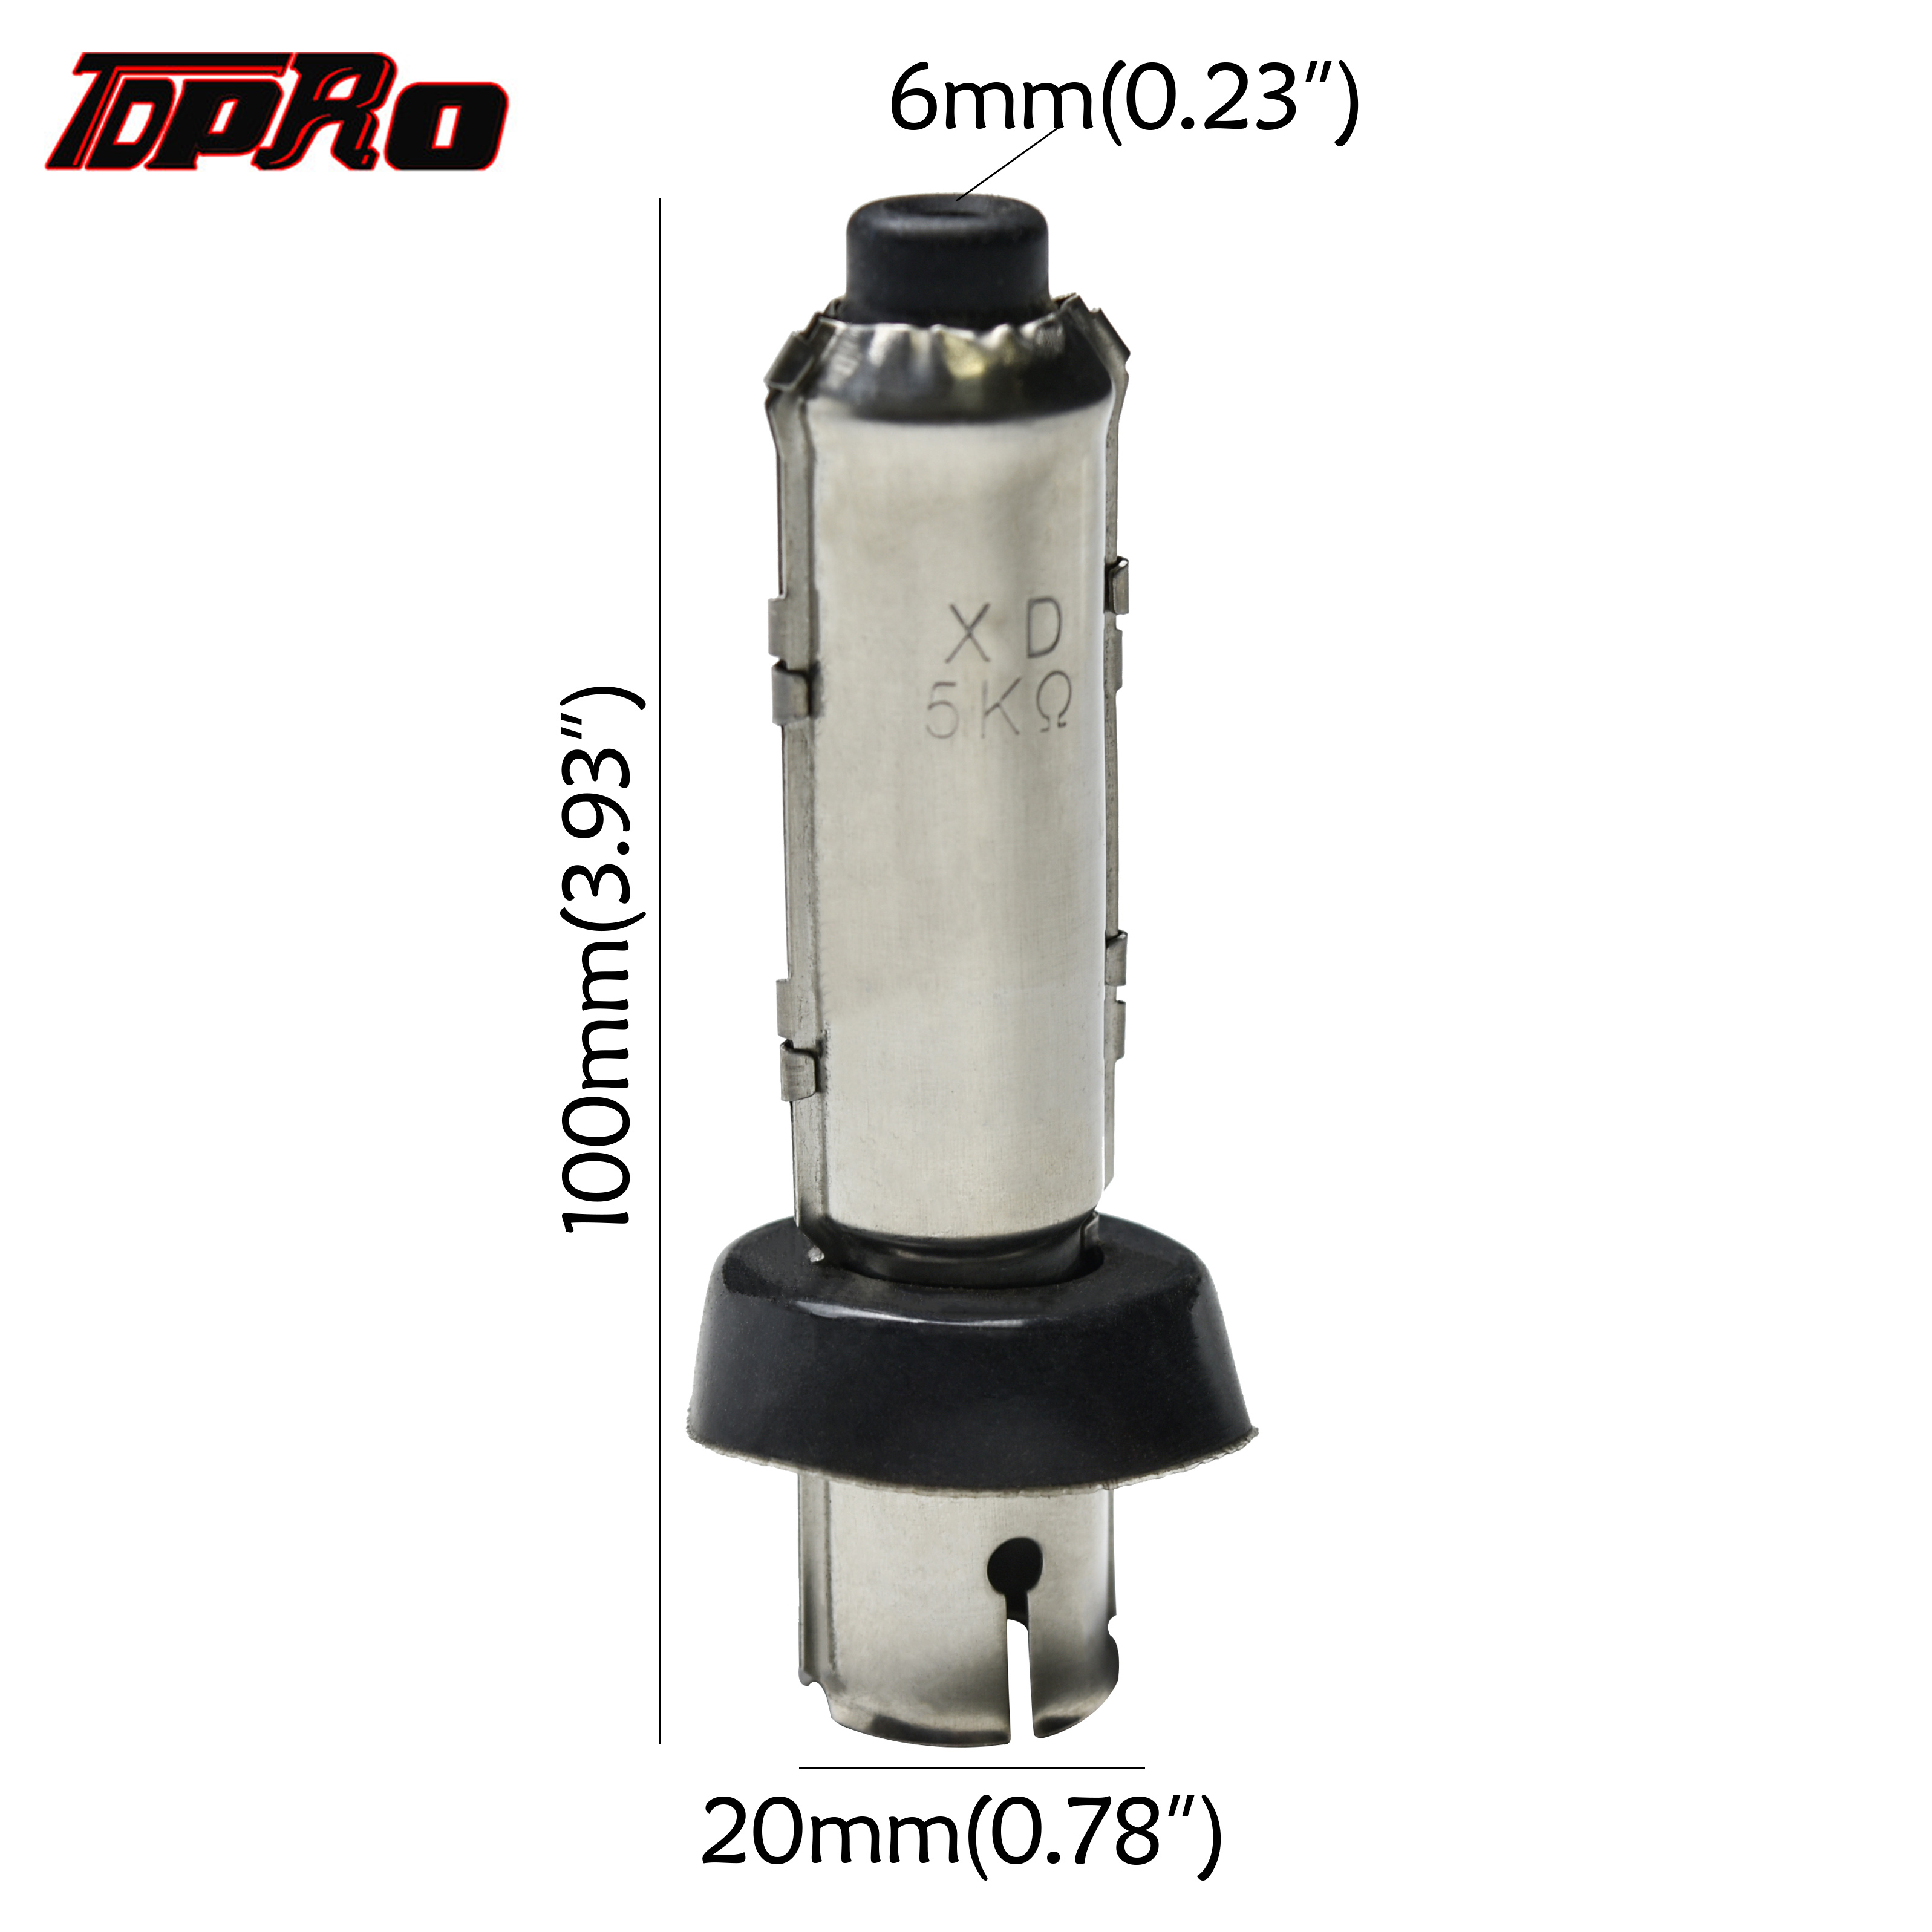 TDPRO Moped 180 Degree Ignition Coil Cap Waterproof Metal Spark Plug Caps New For Motorcycle Dirt Bike ATV Go kart Pitbike Quad image